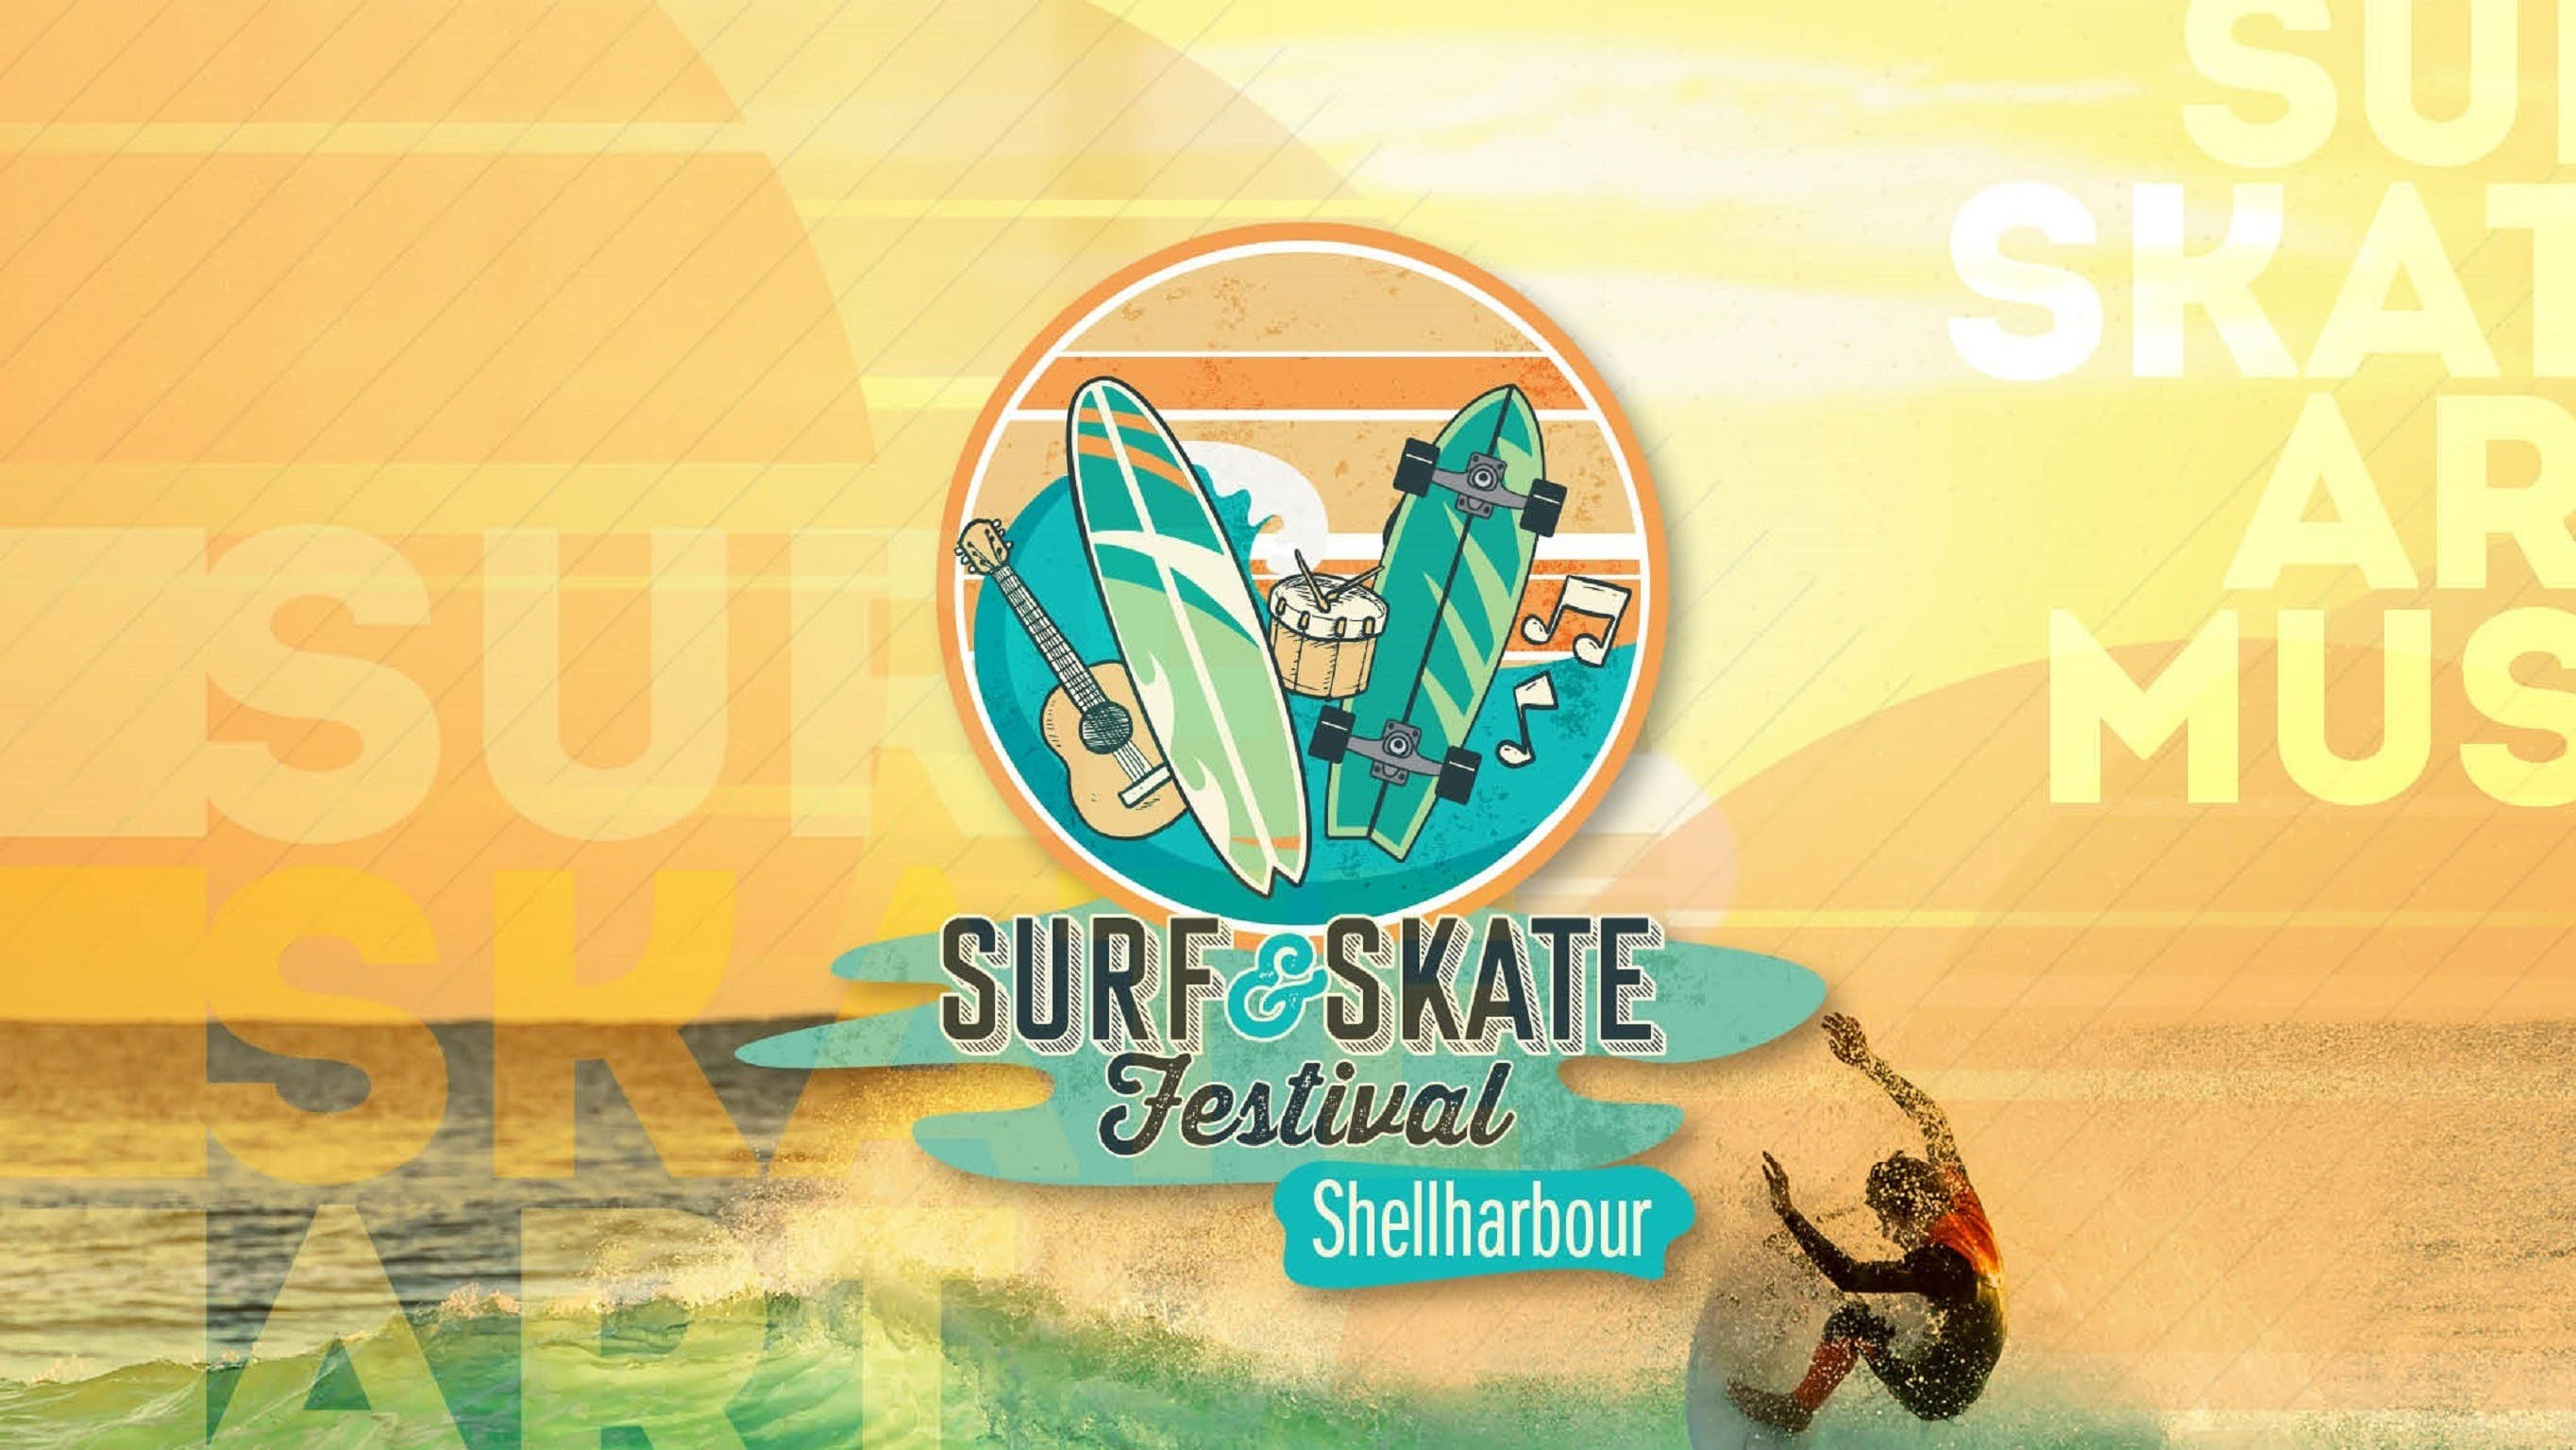 Skate and Surf Festival Shellharbour - Tourism Cairns